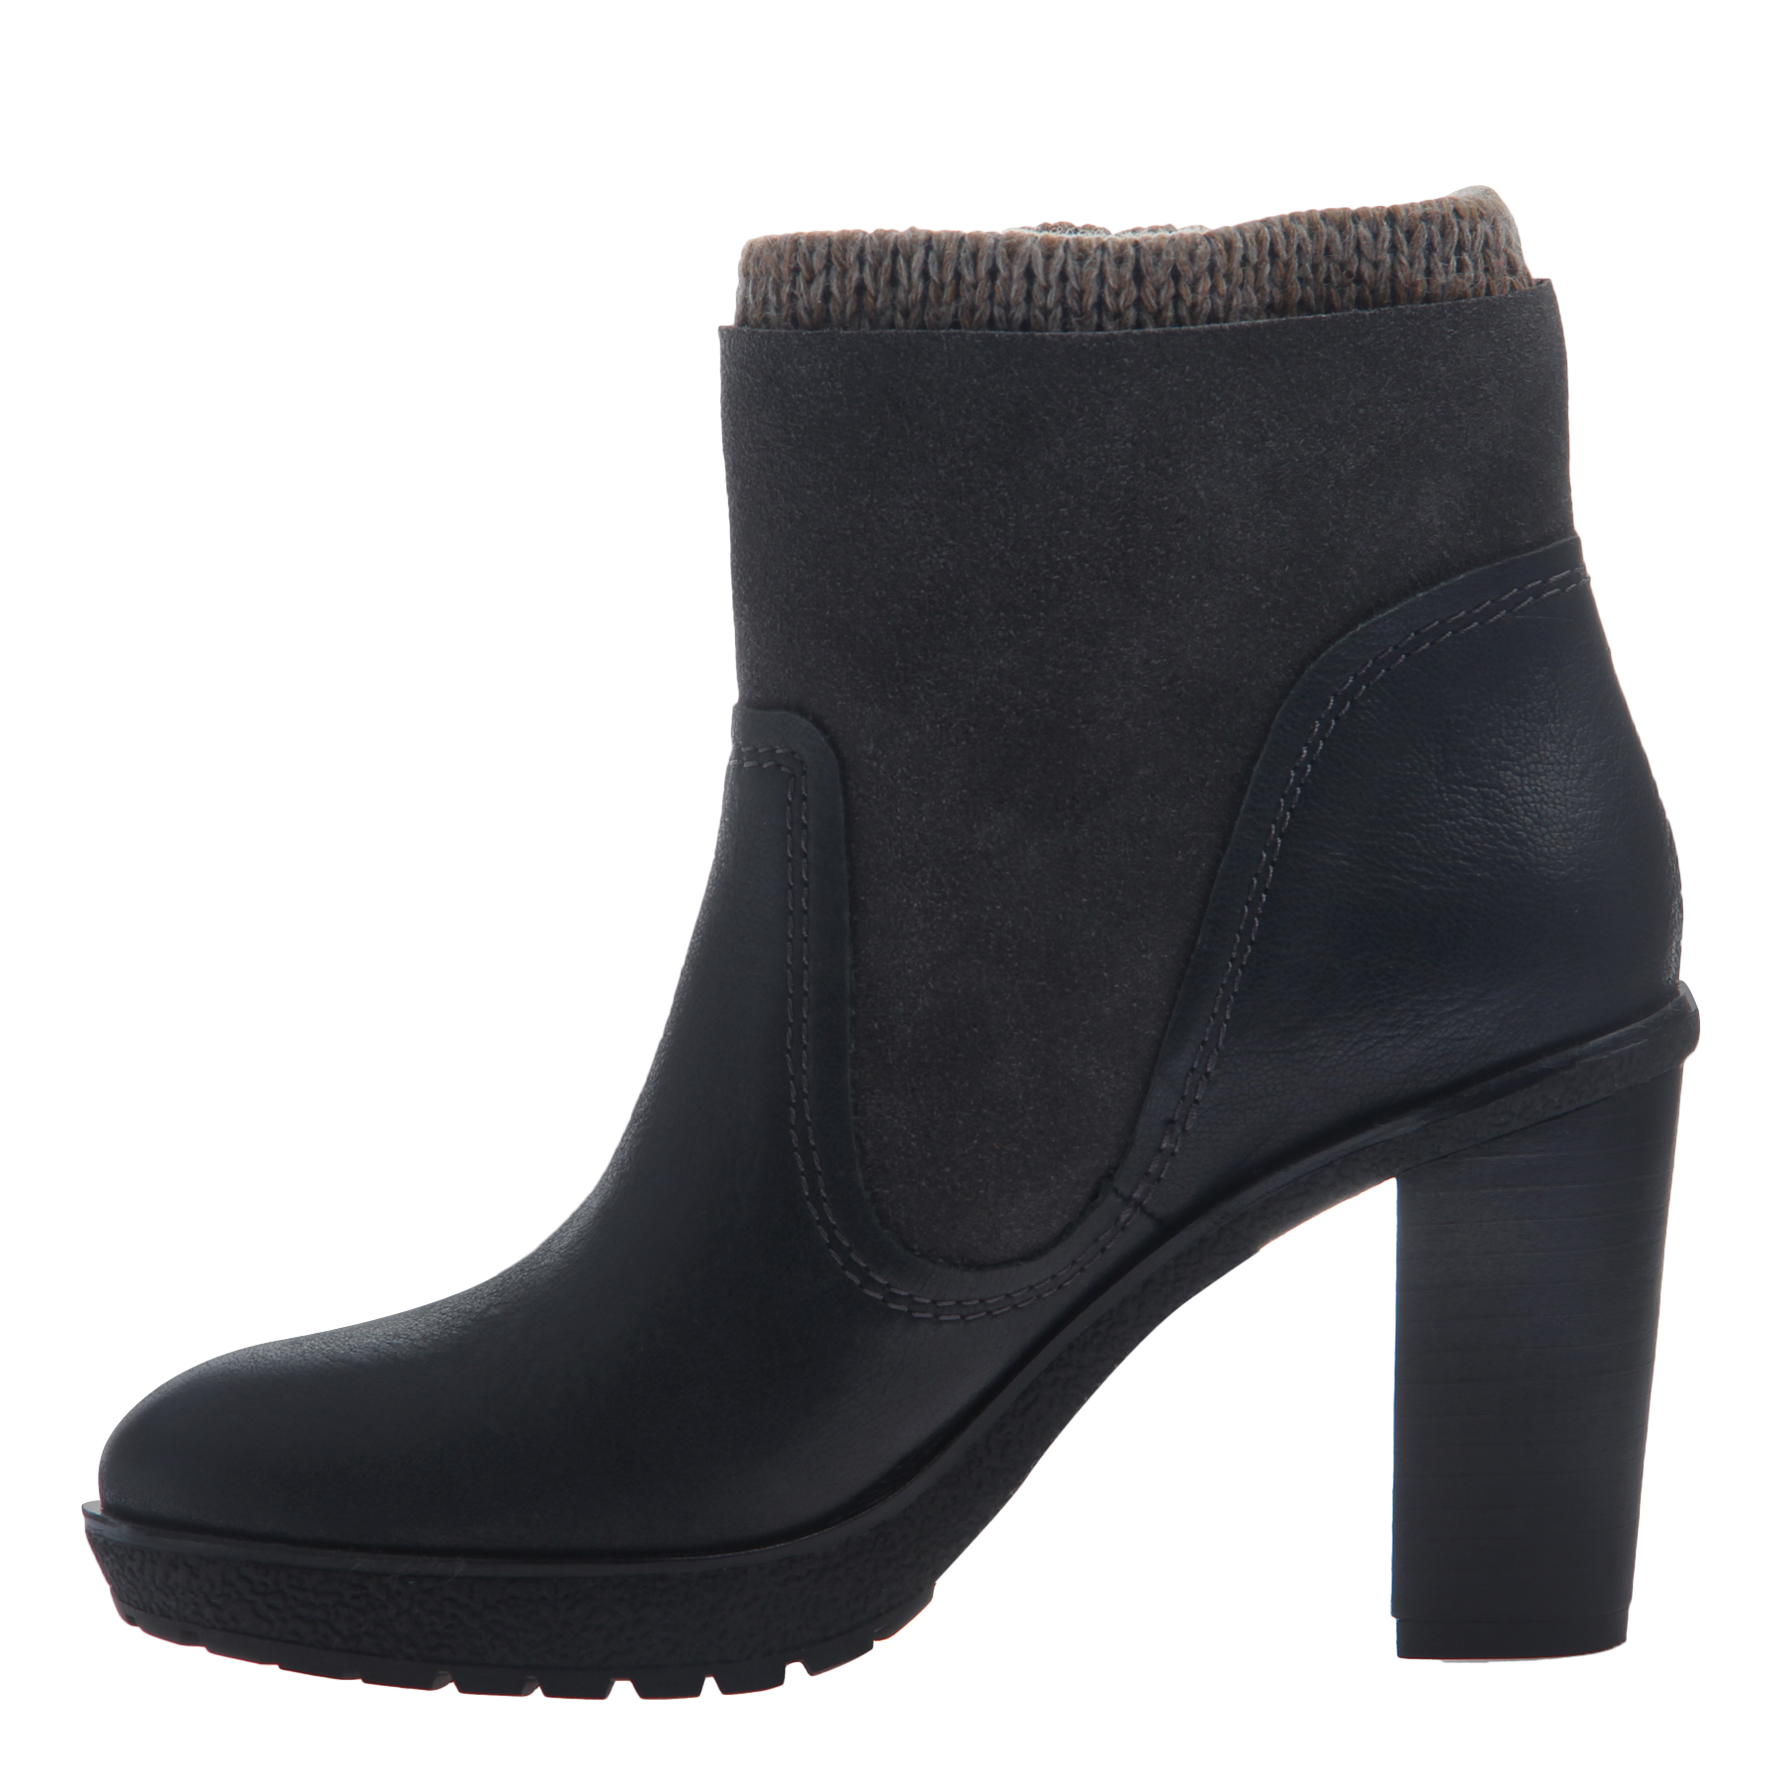 Nicole women's ankle boot roselle in lead inside view